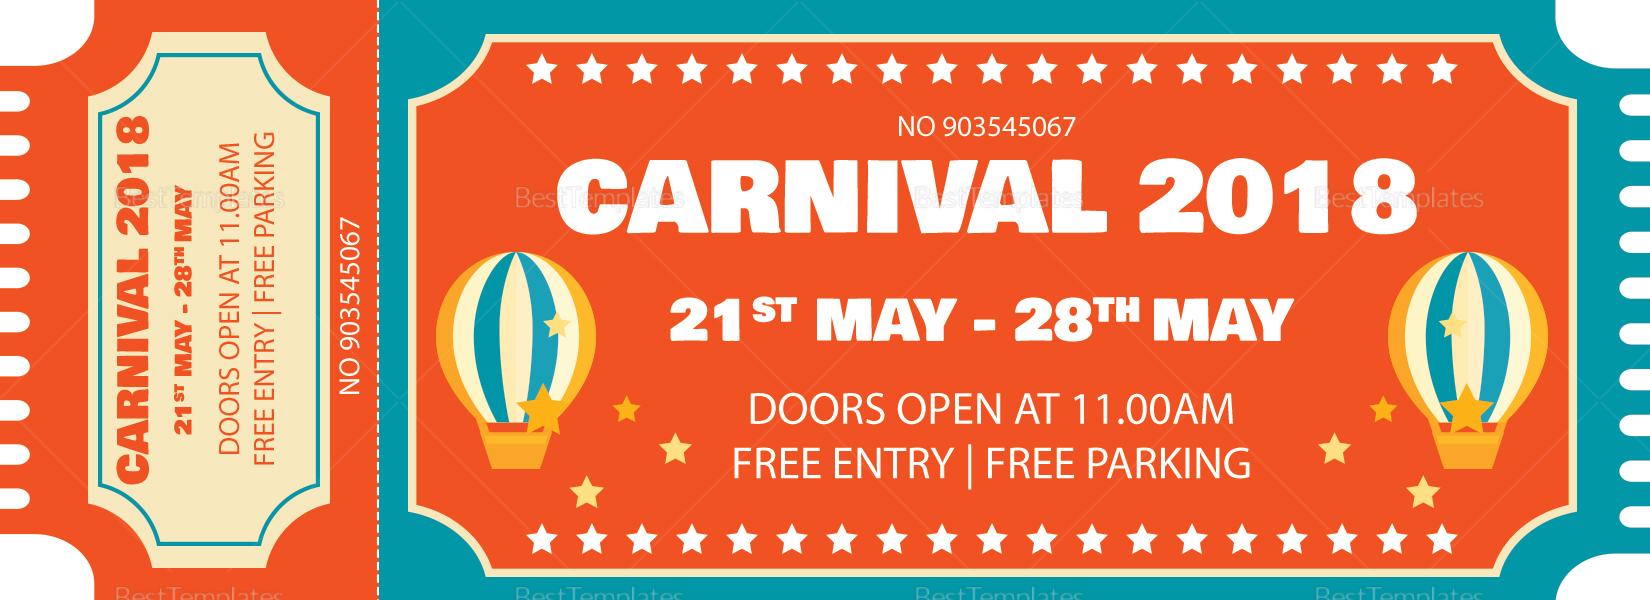 Carnival Event Ticket Design Template In PSD Word Publisher Pages Carnival  2016 Ticket 2 Carnival Event  Entry Ticket Template